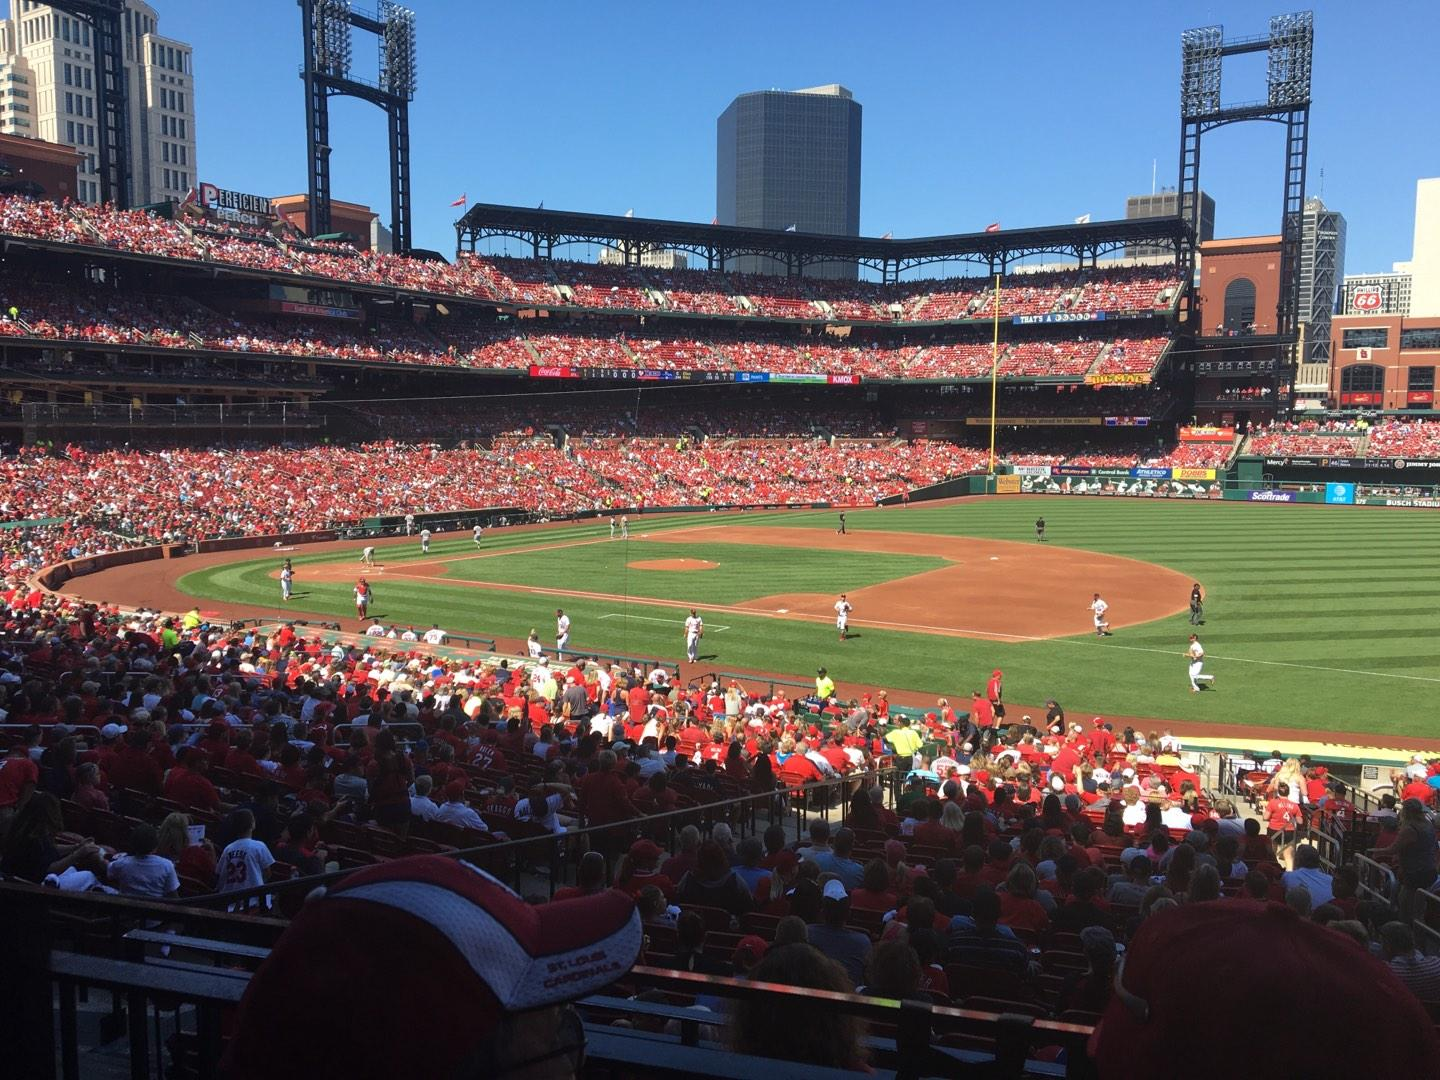 Busch Stadium Section 140 Row 21 Seat 12